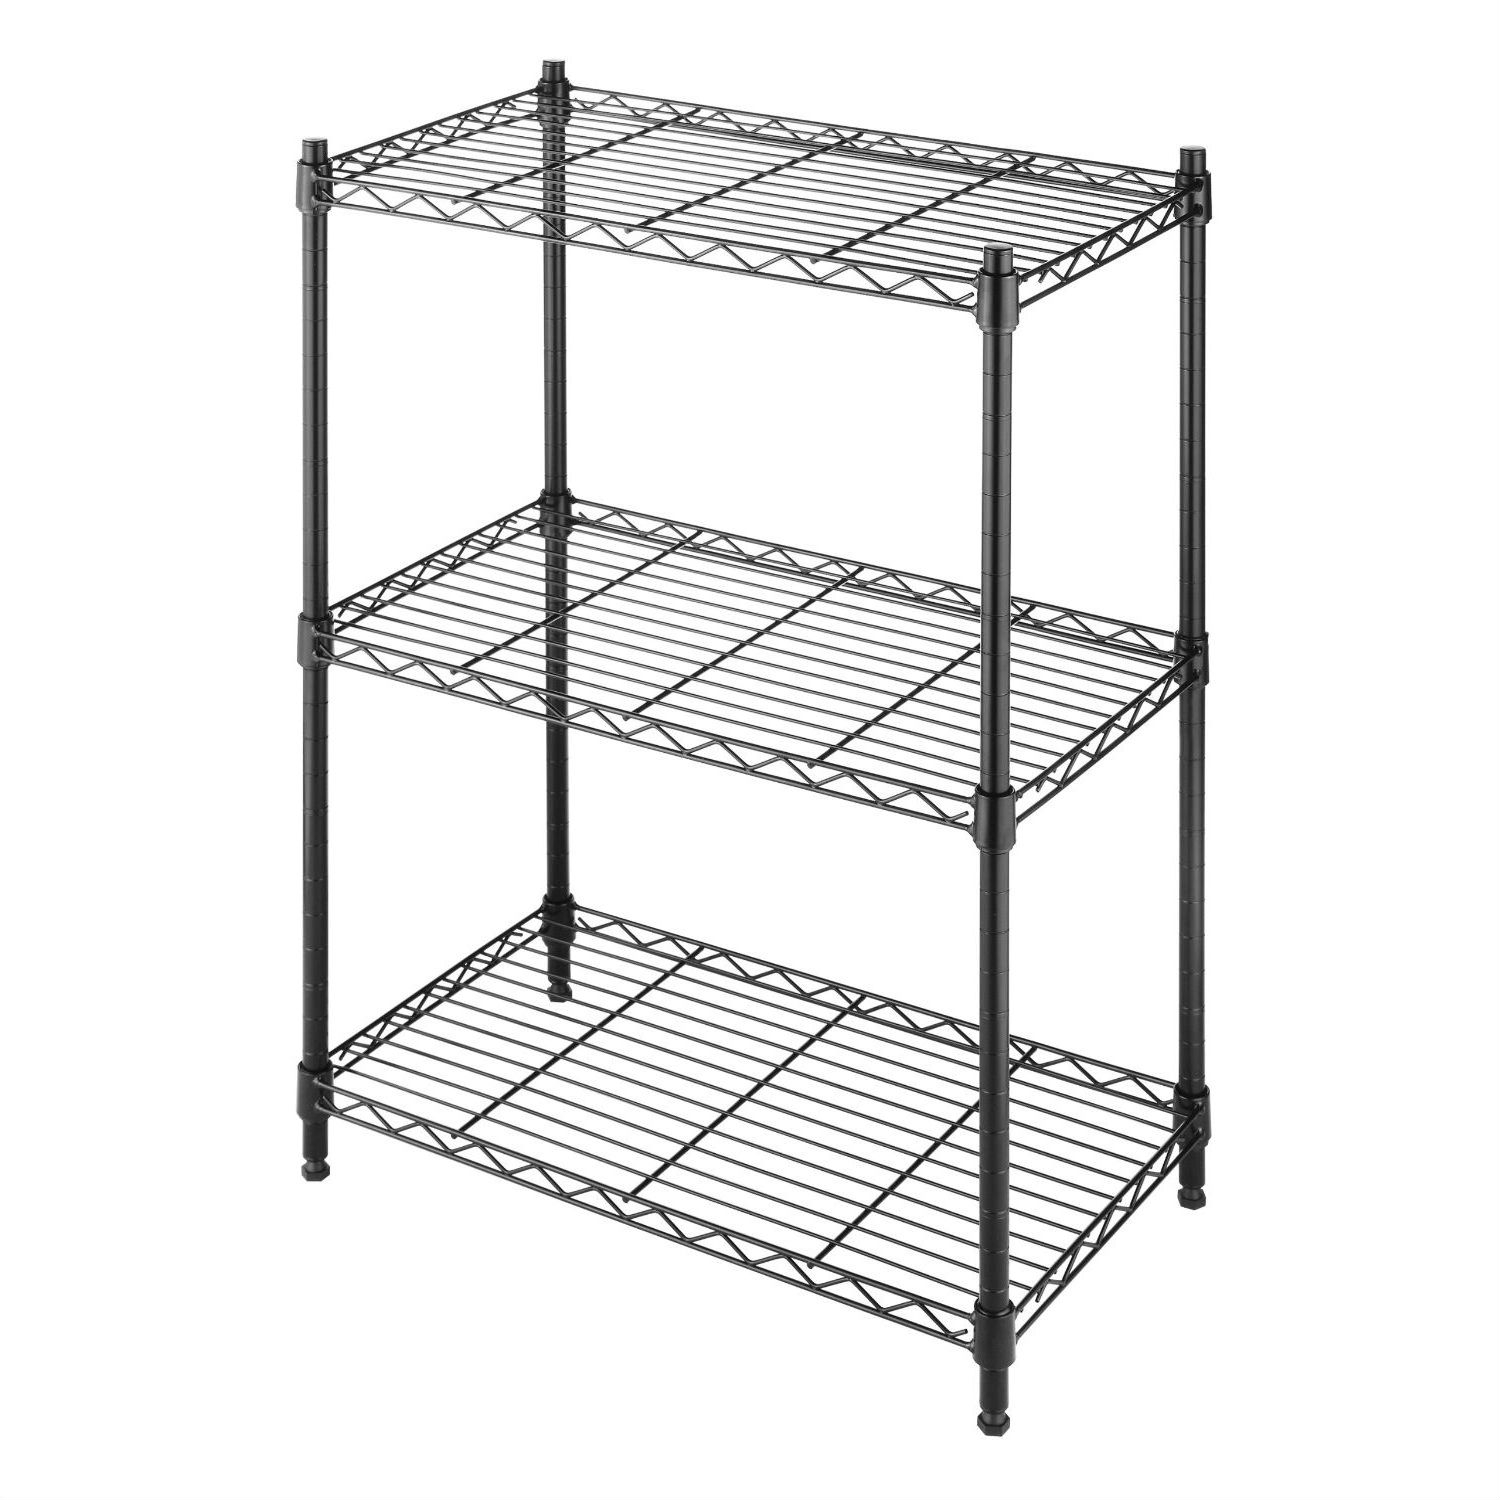 Metal Storage Shelf Best Storage Design 2017